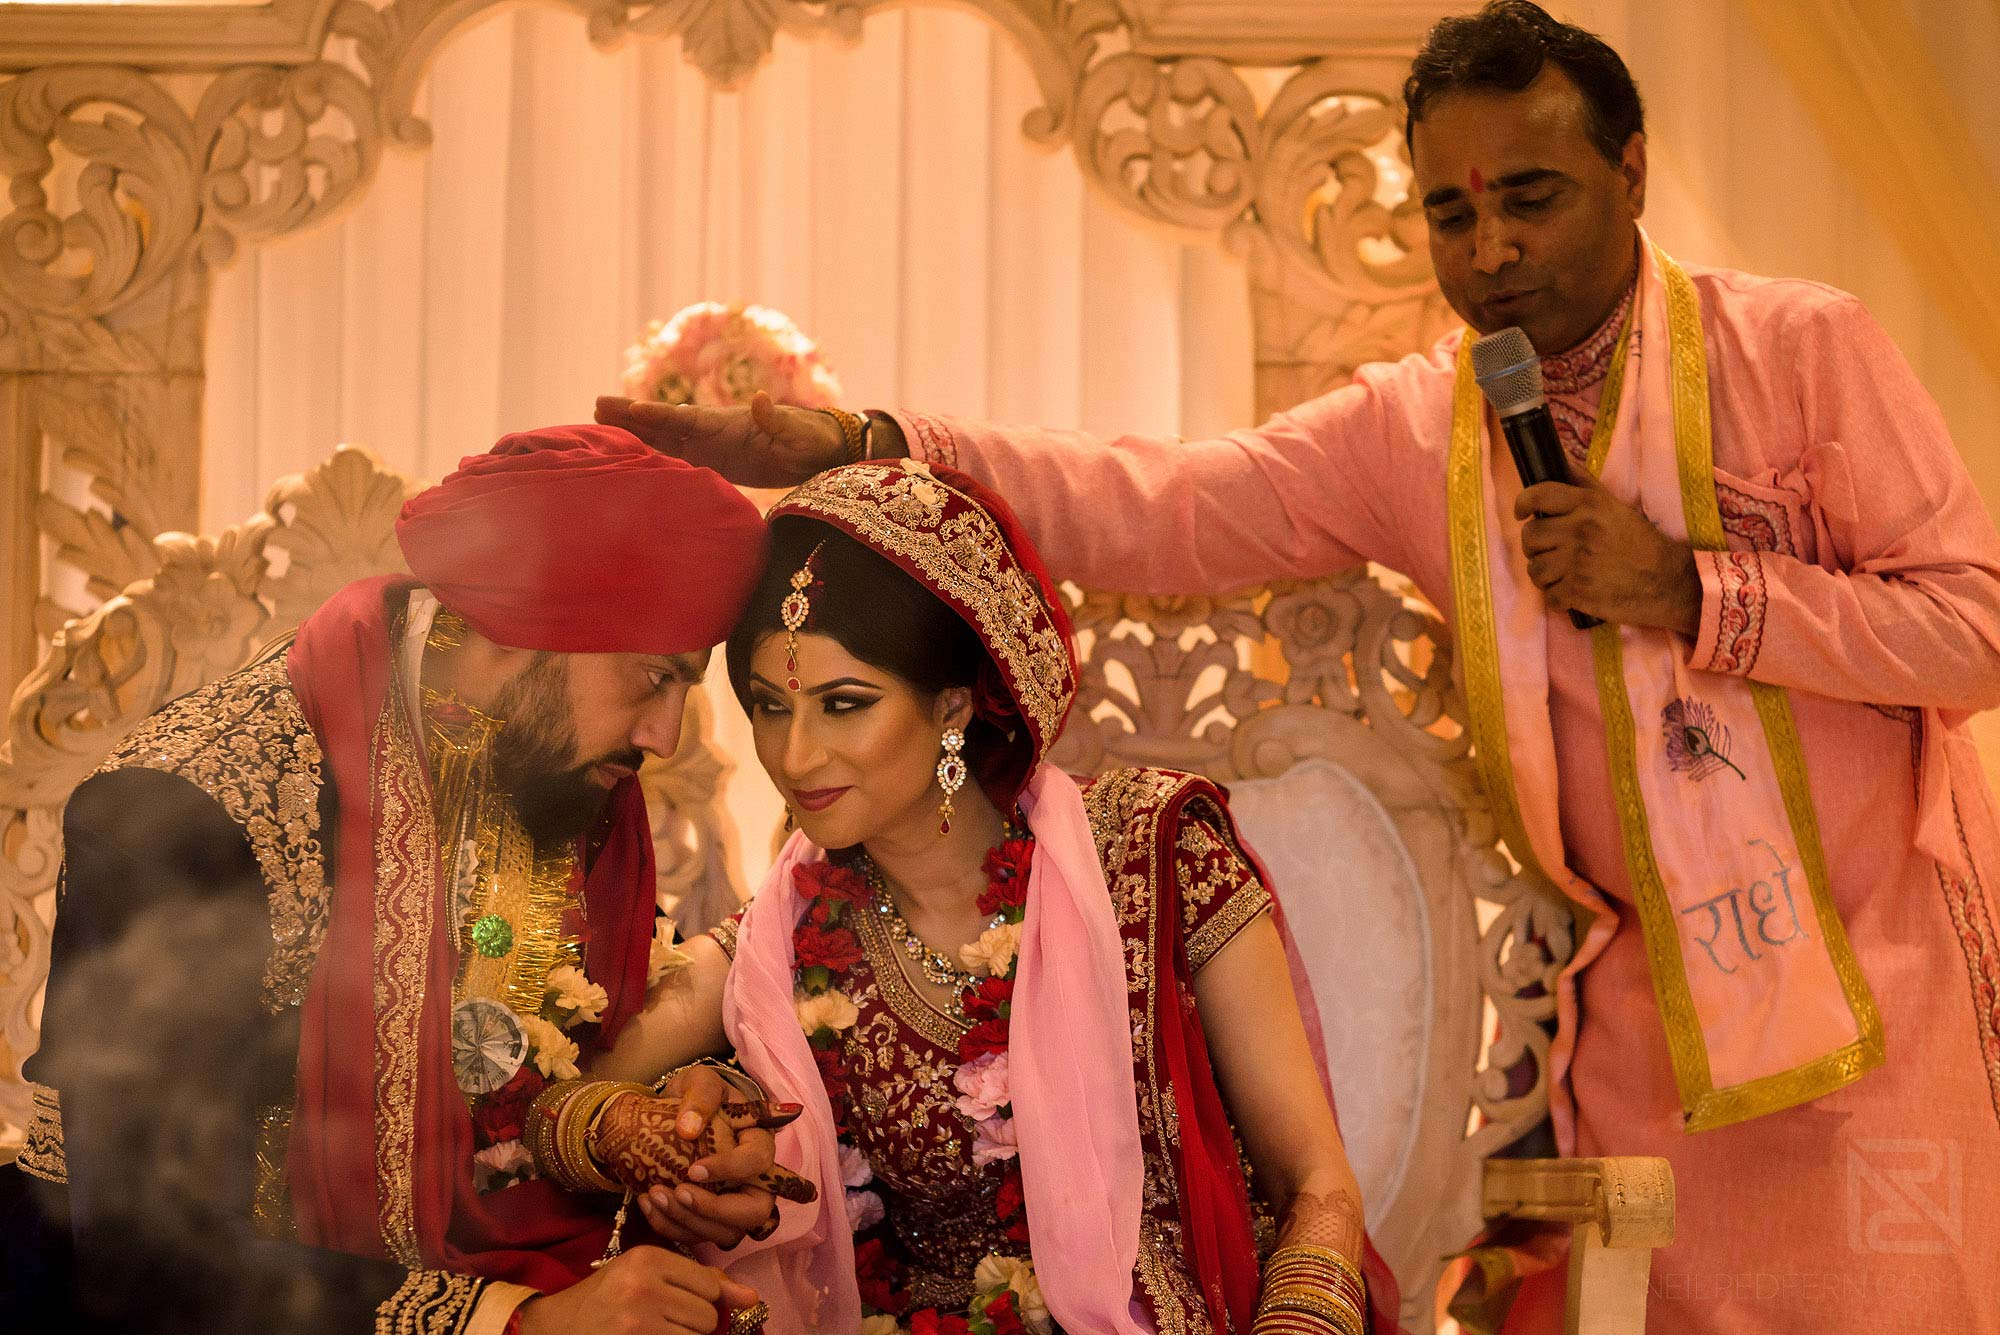 special moment during Indian wedding ceremony